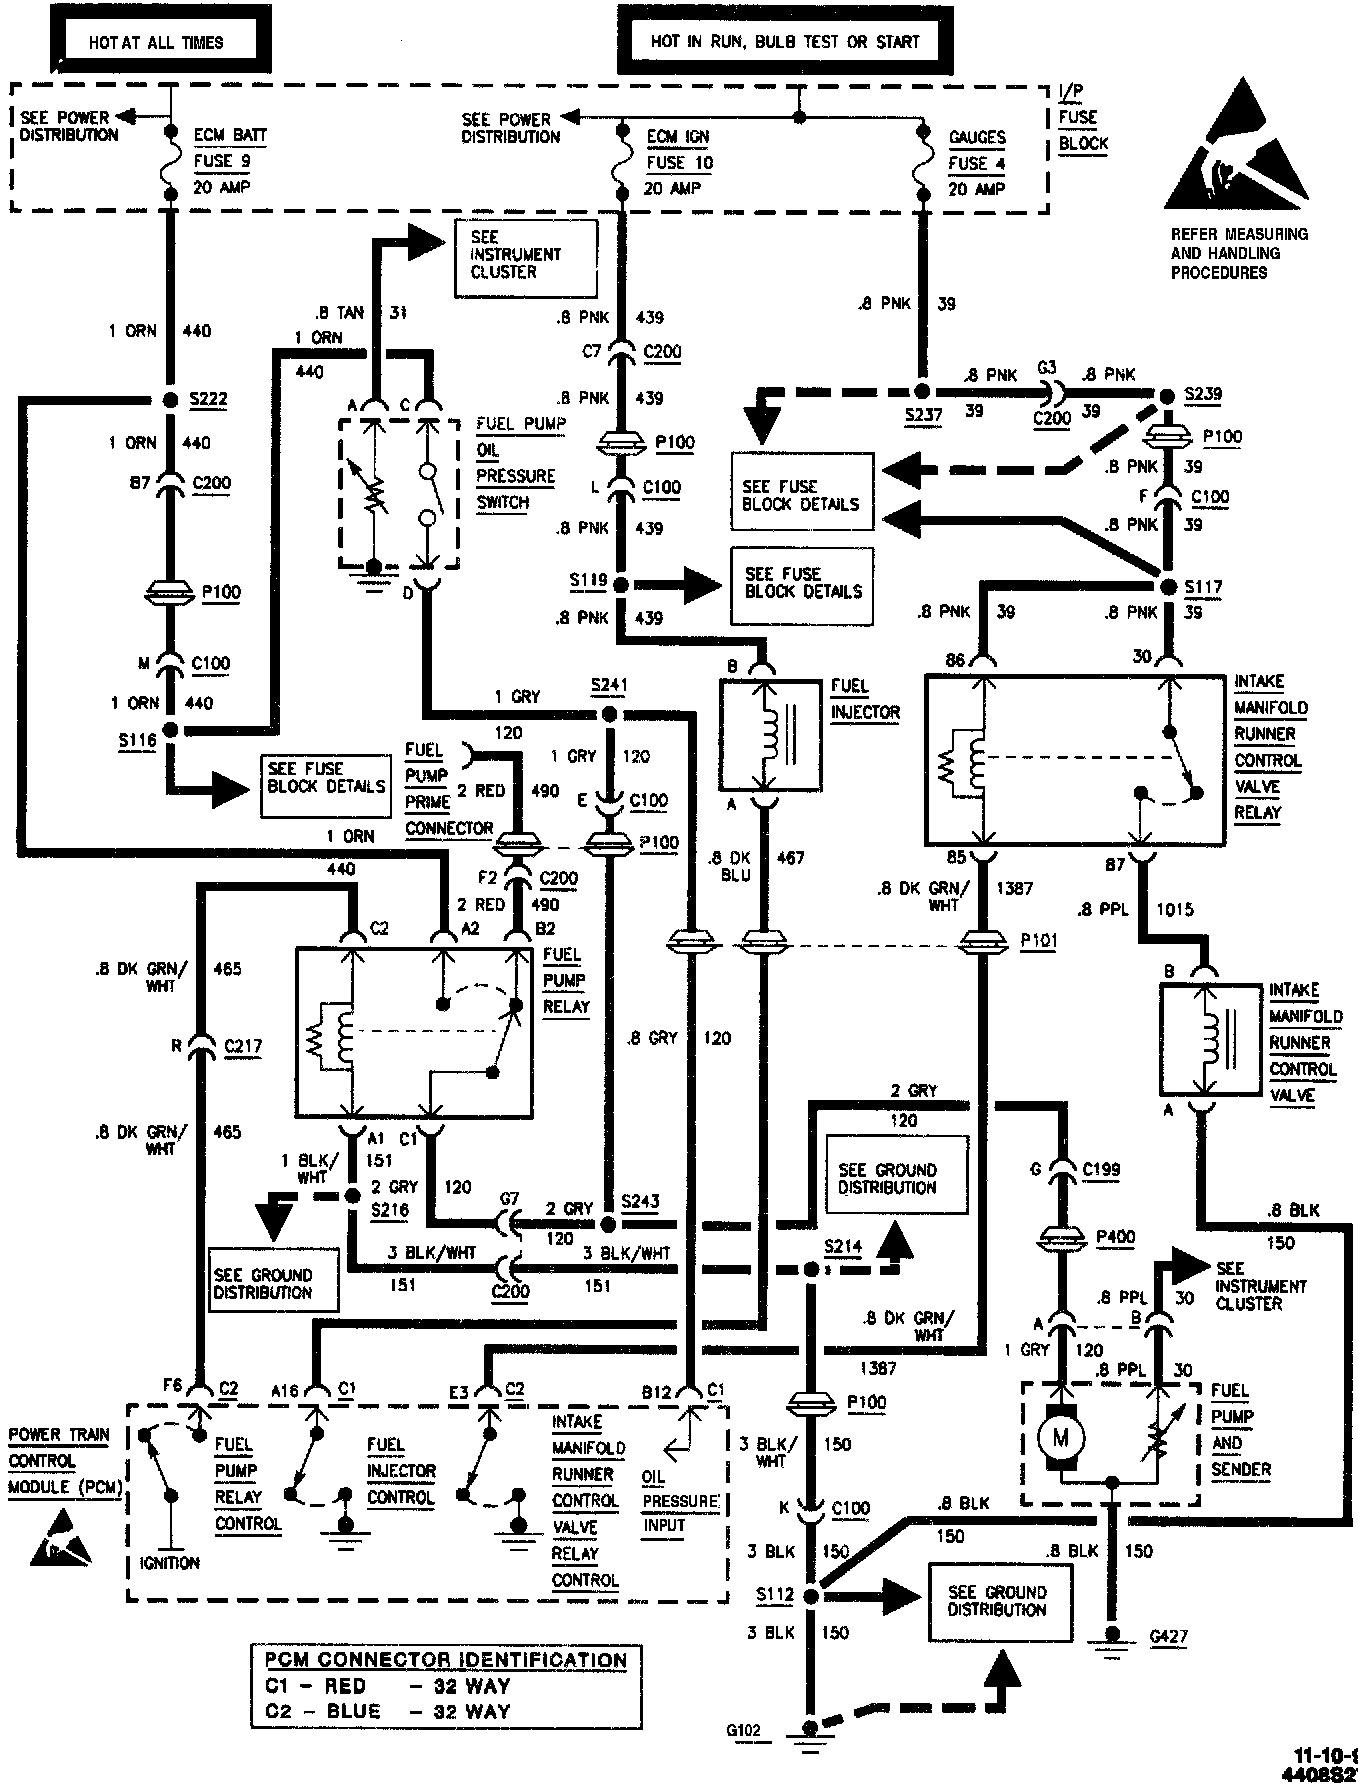 2002 S10 Hose Diagram Wiring Schematic - Diagram Design Sources  symbol-cluttered - symbol-cluttered.lesmalinspres.fr | Wiring Diagram For 2002 Chevy S10 |  | symbol-cluttered.lesmalinspres.fr